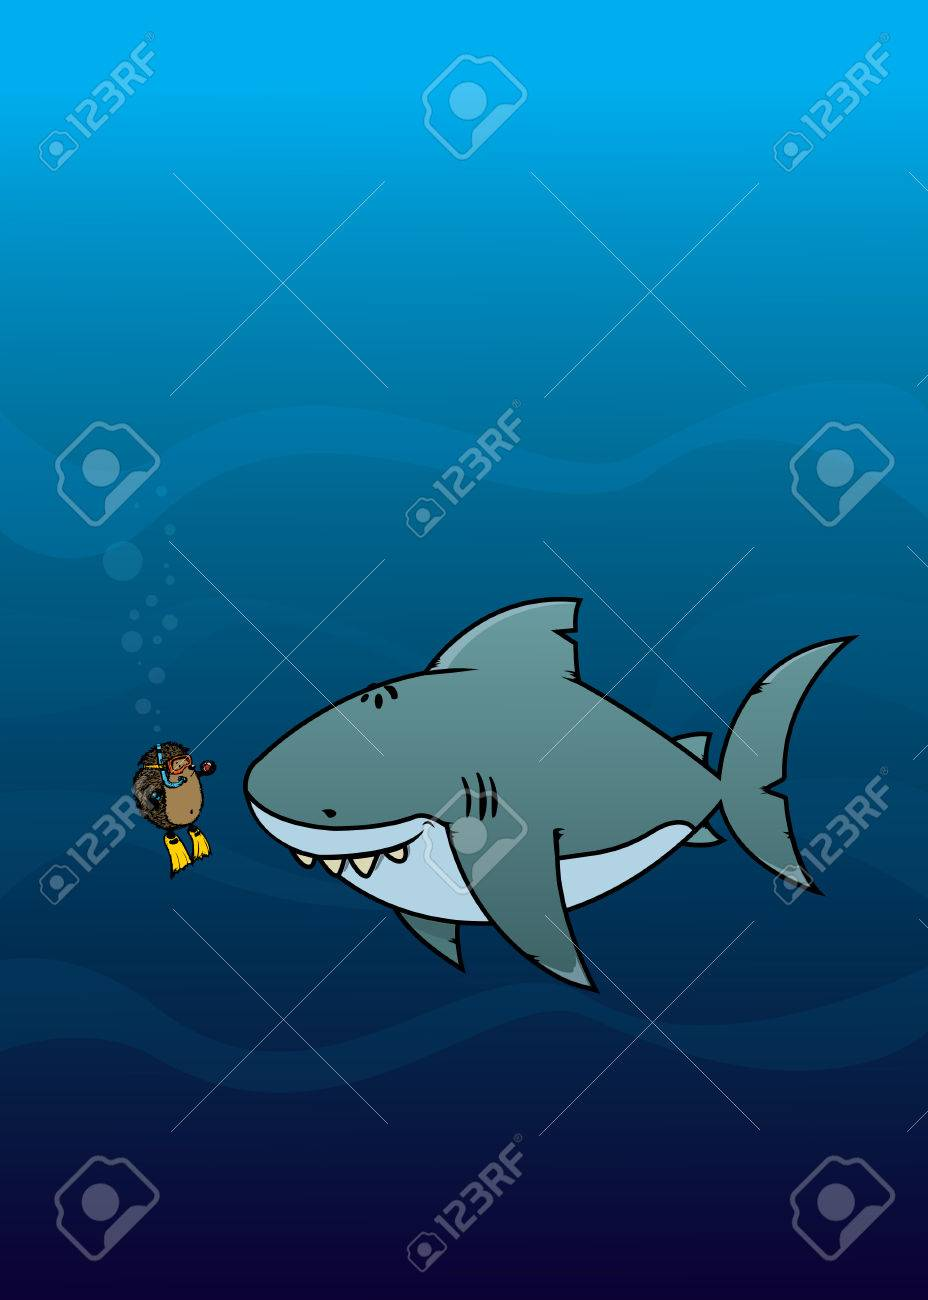 Hedgehog and shark.Funny,sweet and silly looking cartoon characters Stock Vector - 43931001